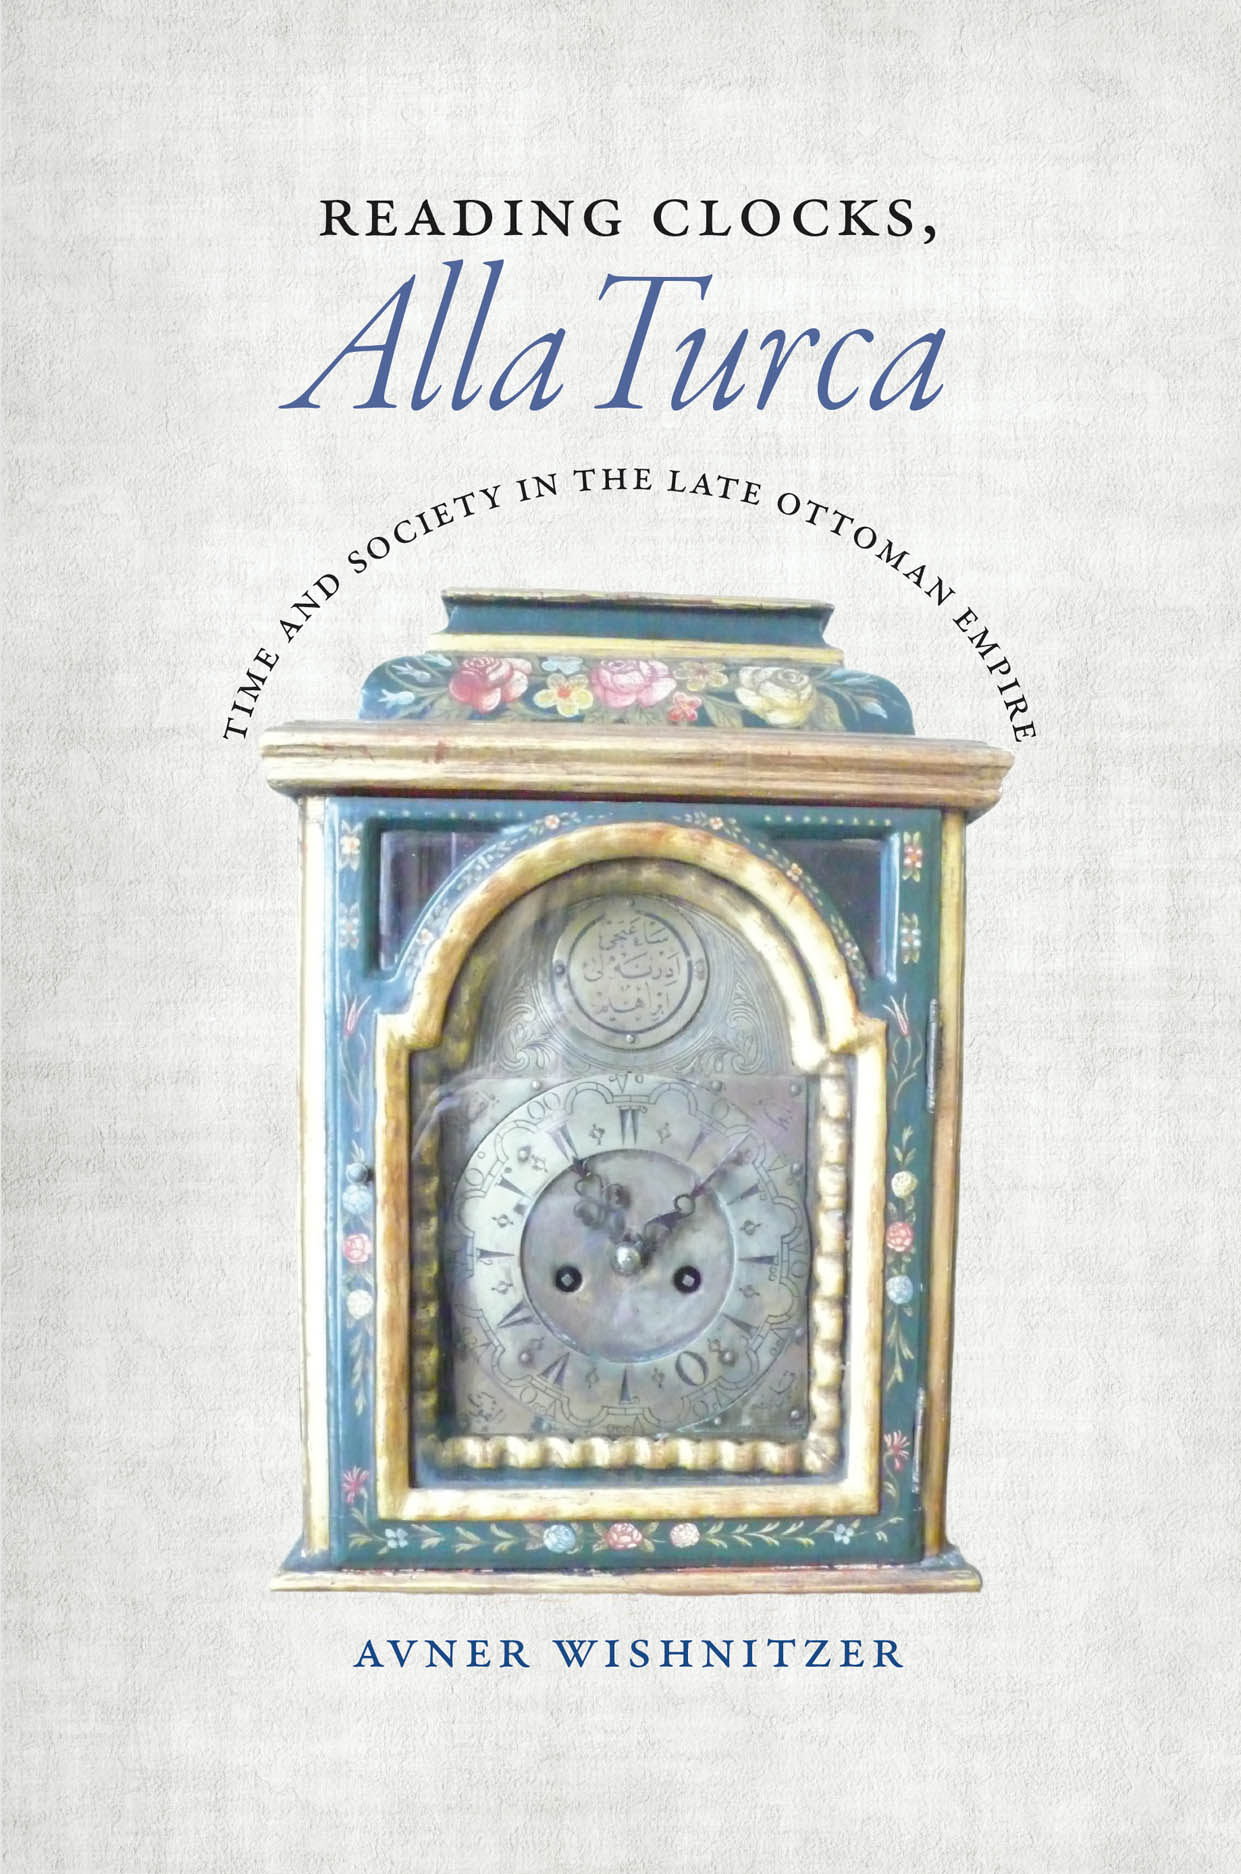 Reading Clocks, Alla Turca: Time and Society in the Late Ottoman Empire